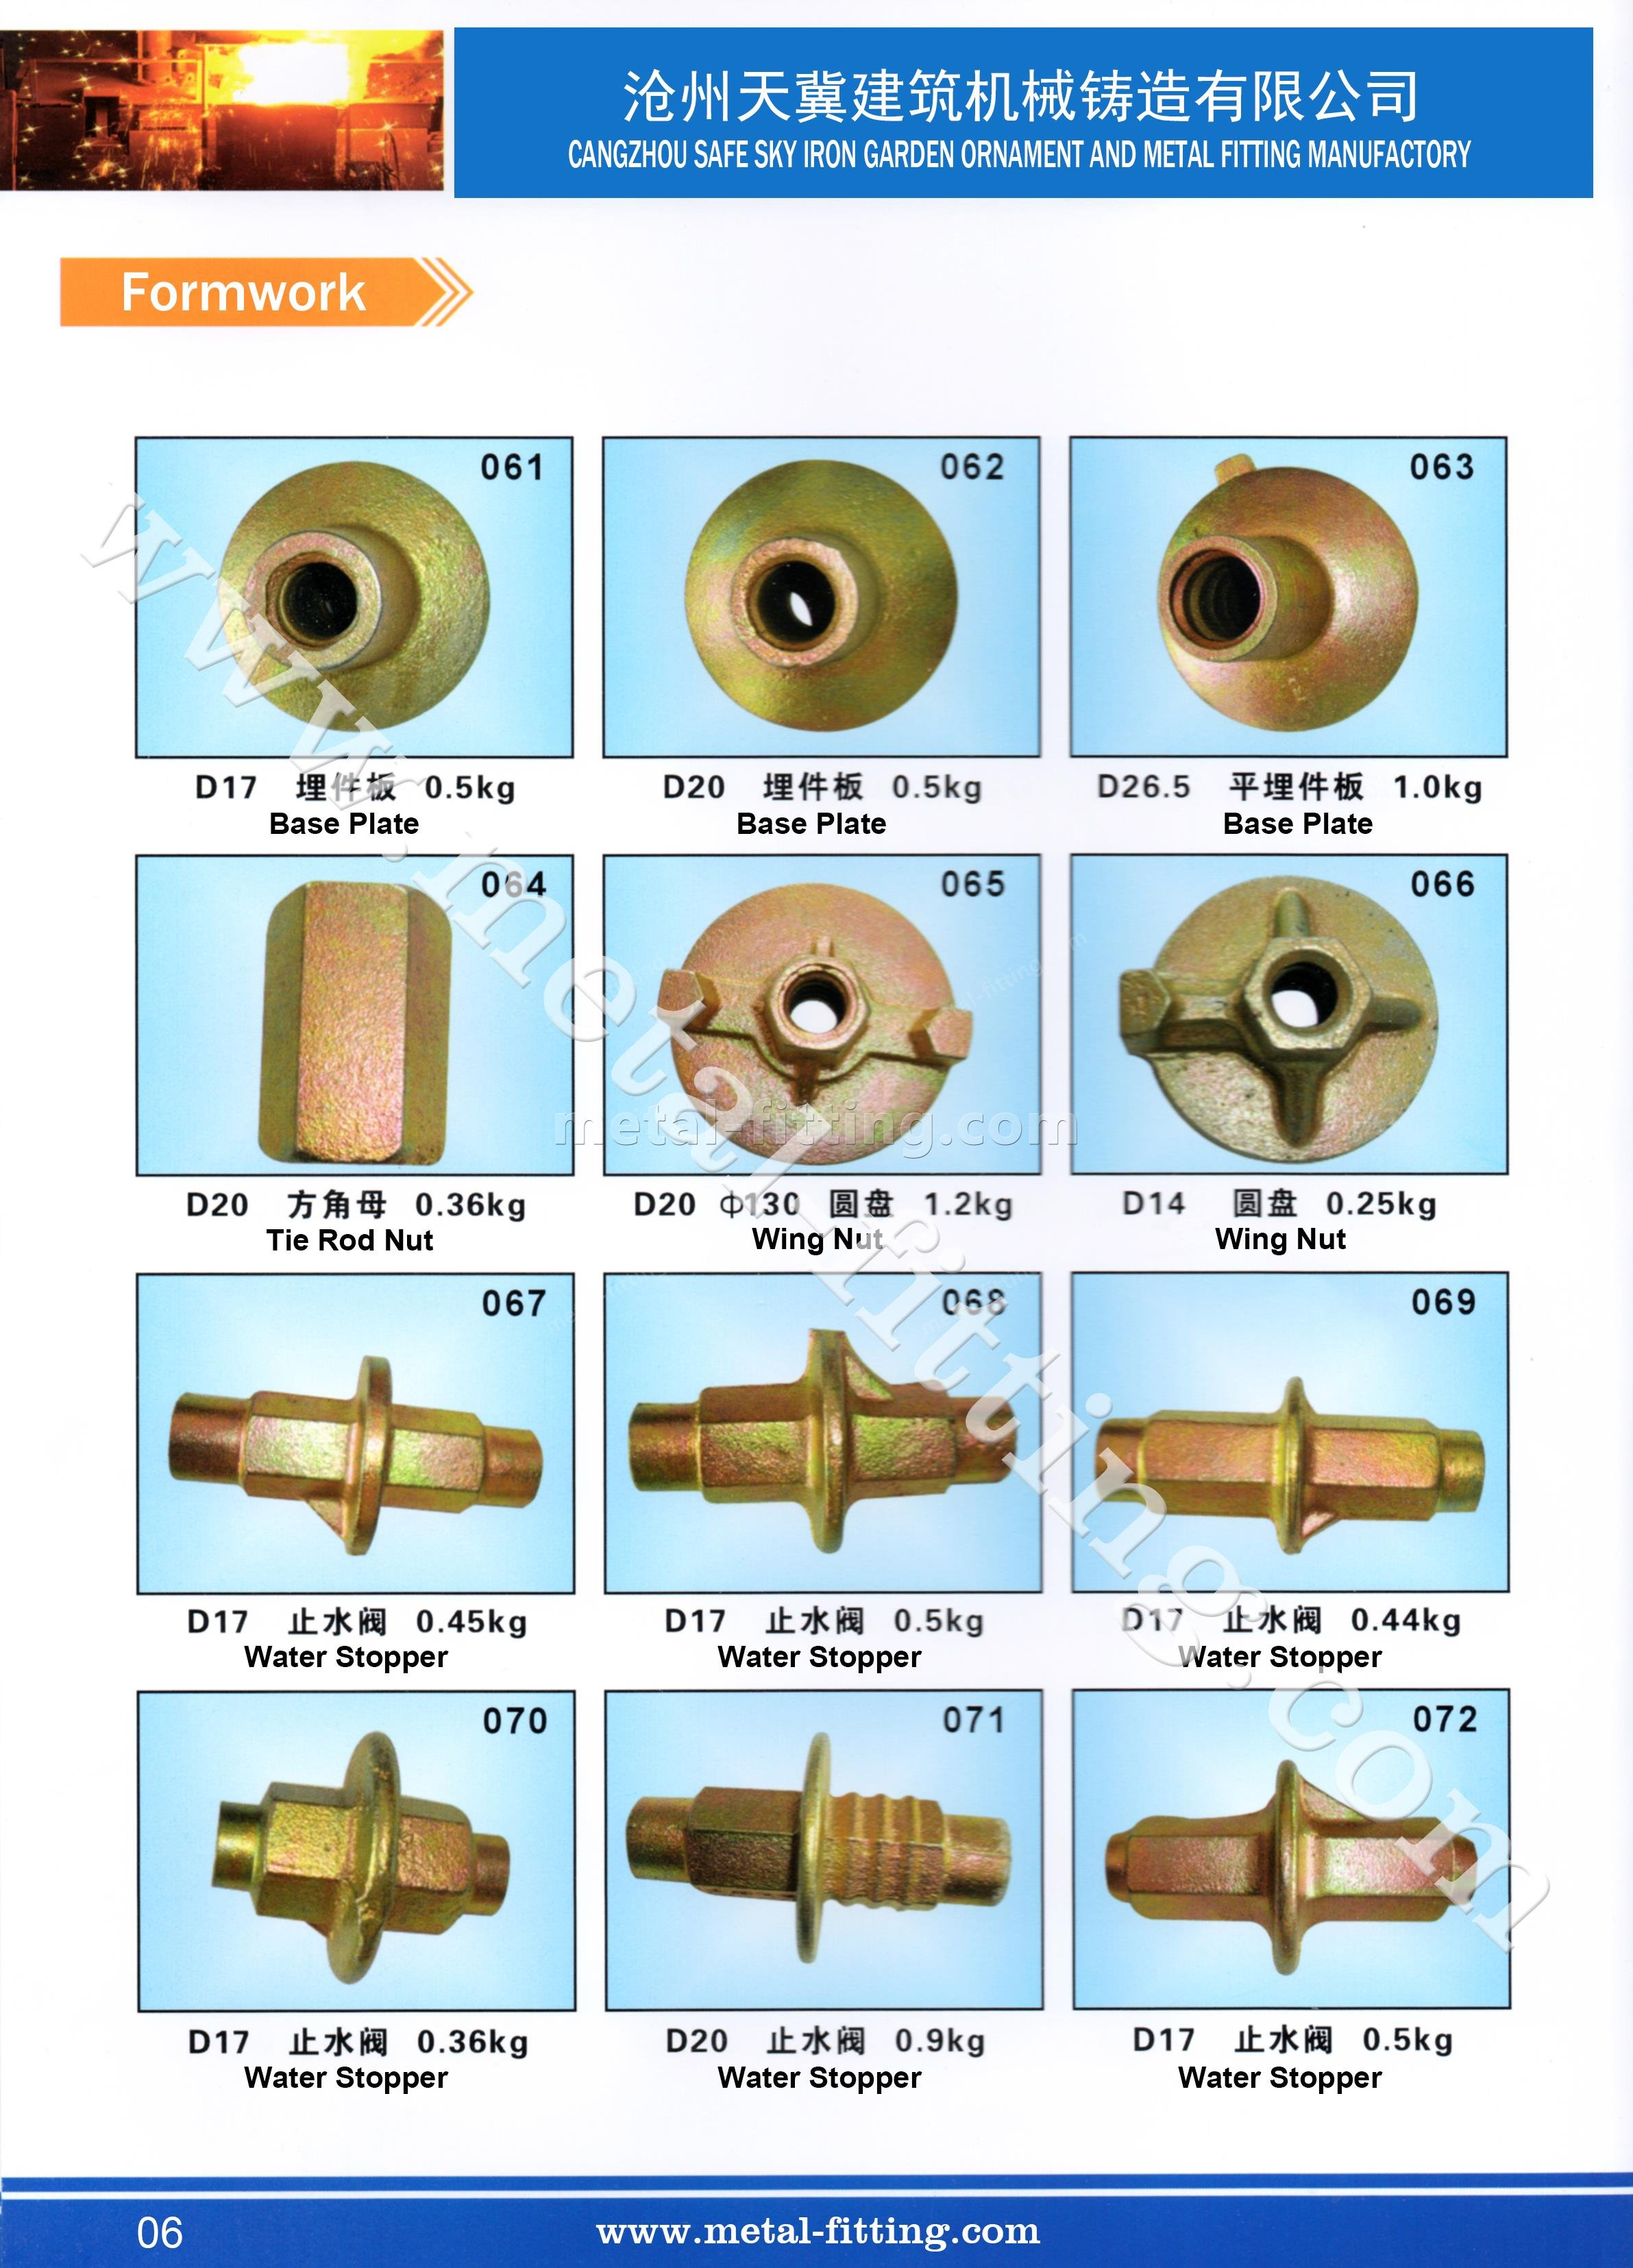 casting steel metal fitting, scaffolding system-6